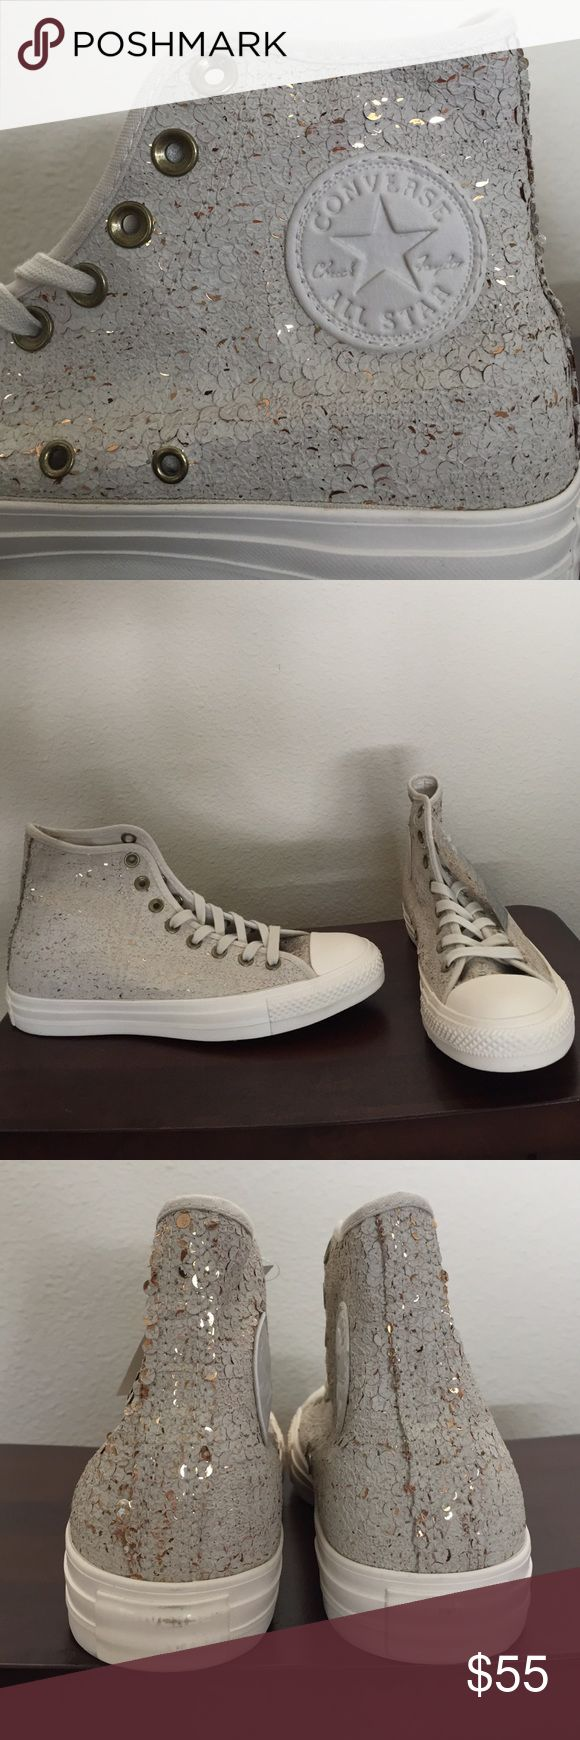 Chuck Taylor distressed sequin hi tops These Converse hi tops are a distressed sequin look. They have gold sequins with white distressing painted over them. They have never been worn. The heels have a little bit of scuffing to add to the distressed look. They are unique and so cute!! Converse Shoes